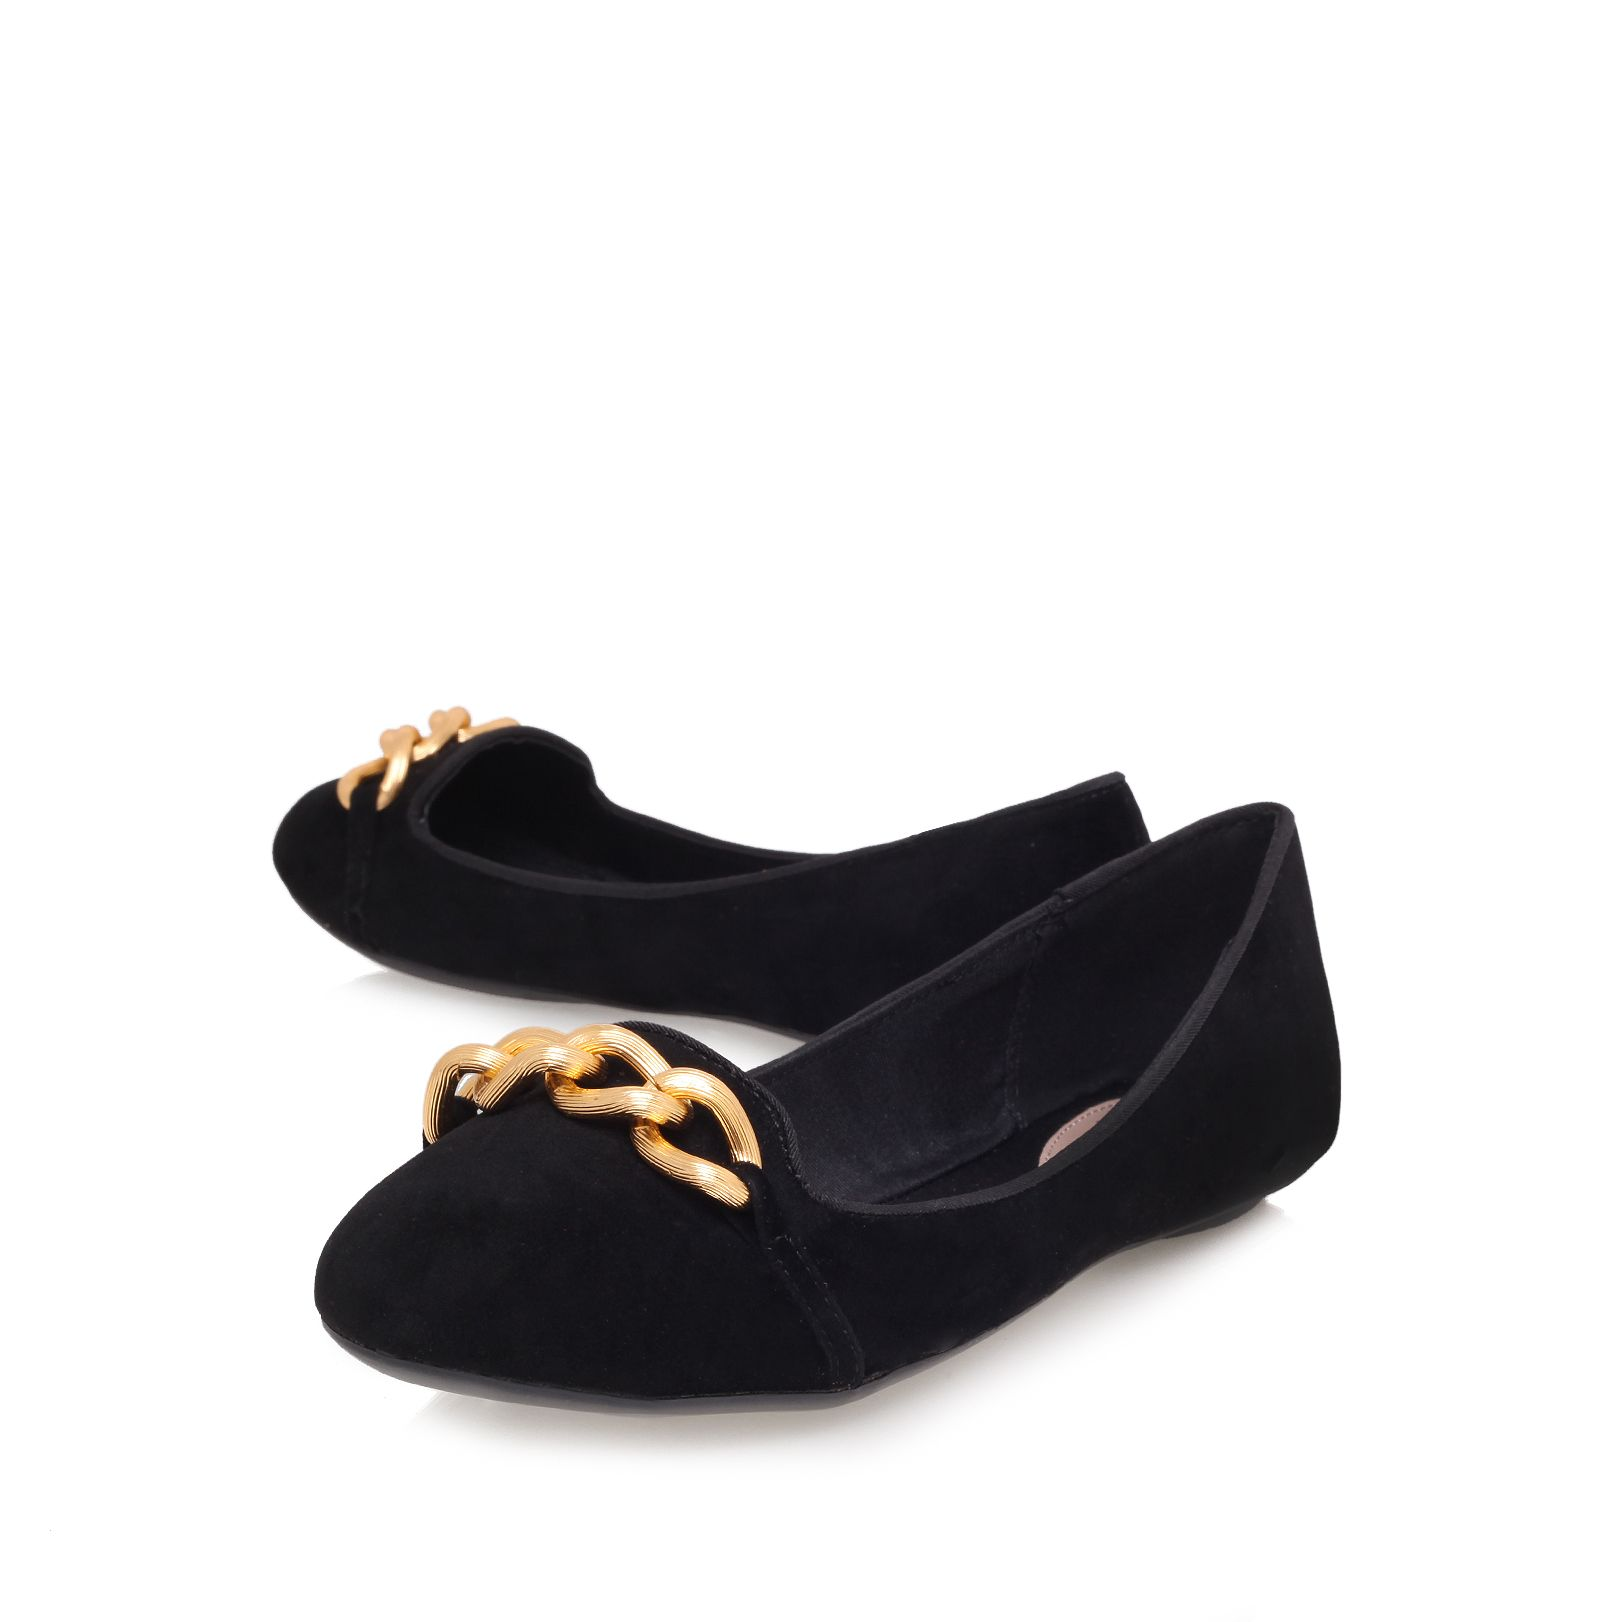 Monty flat slipper shoes